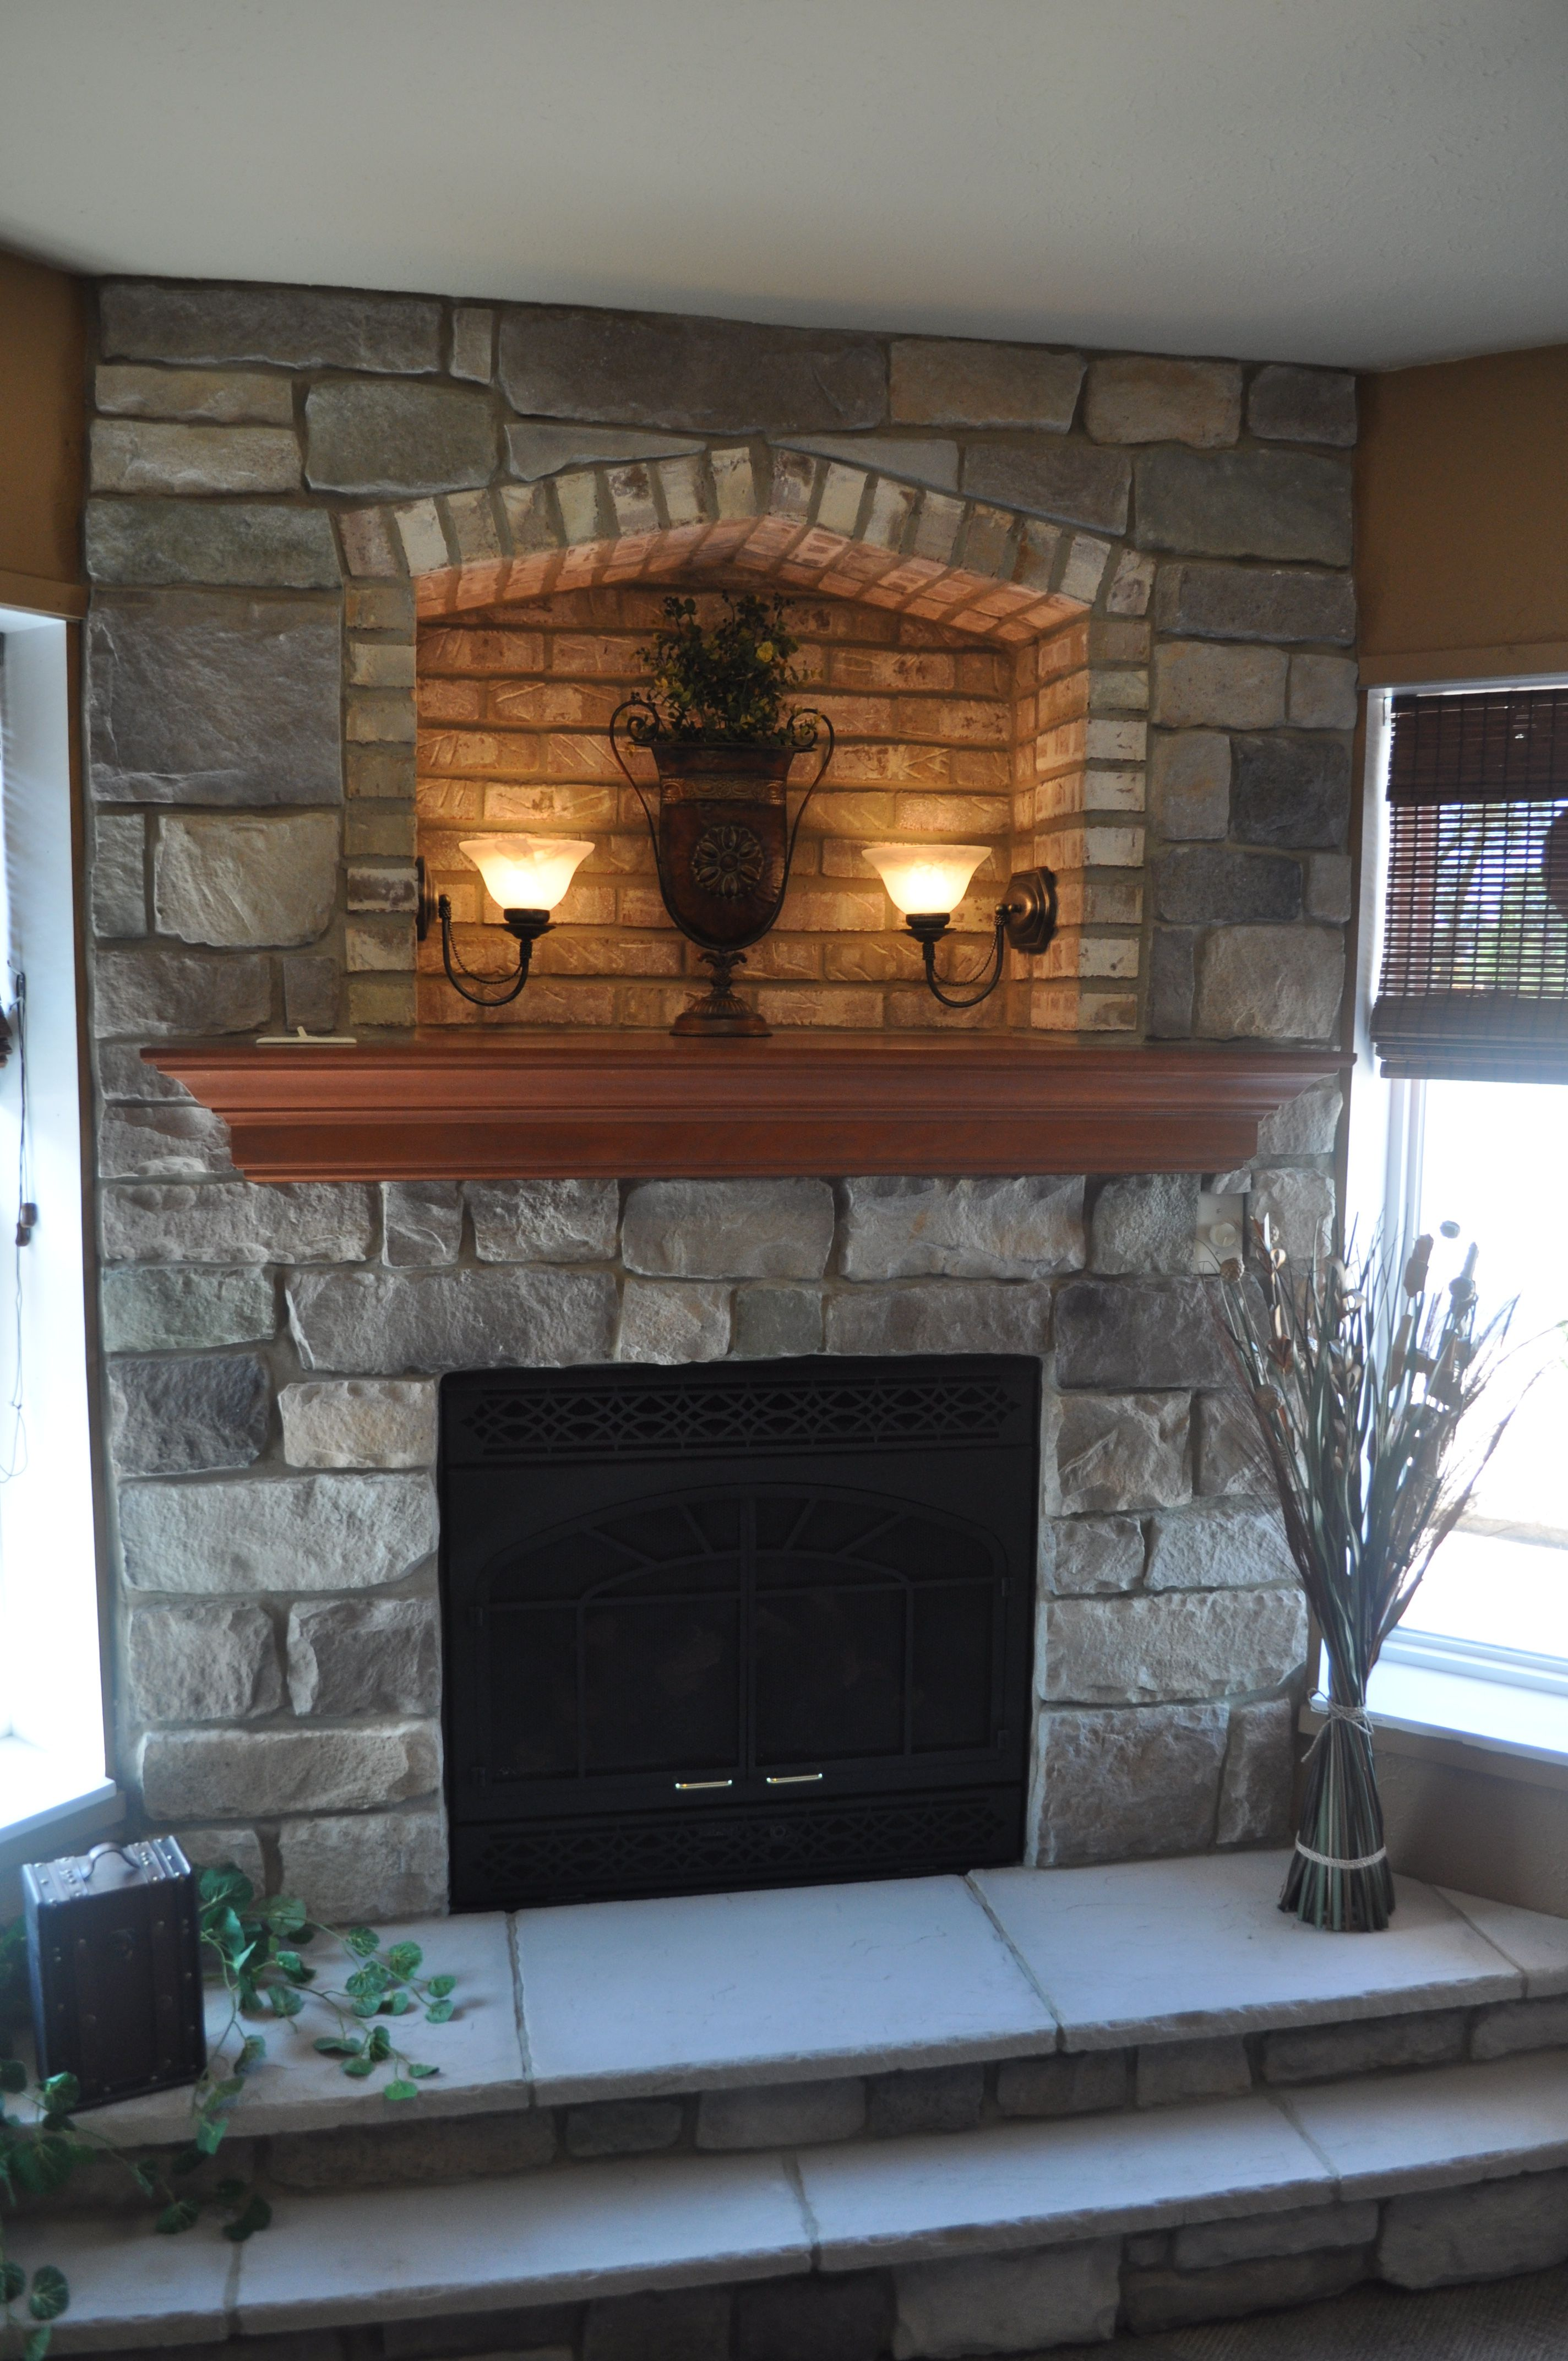 Stoned Fireplace with Cove 2-step Hearth and Crown Maple Mantle with Extended Shelf. Bucks Creek Cut Cobble and Desert Tan Brick J\u0026N Stone & Stoned Fireplace with Cove 2-step Hearth and Crown Maple Mantle ...